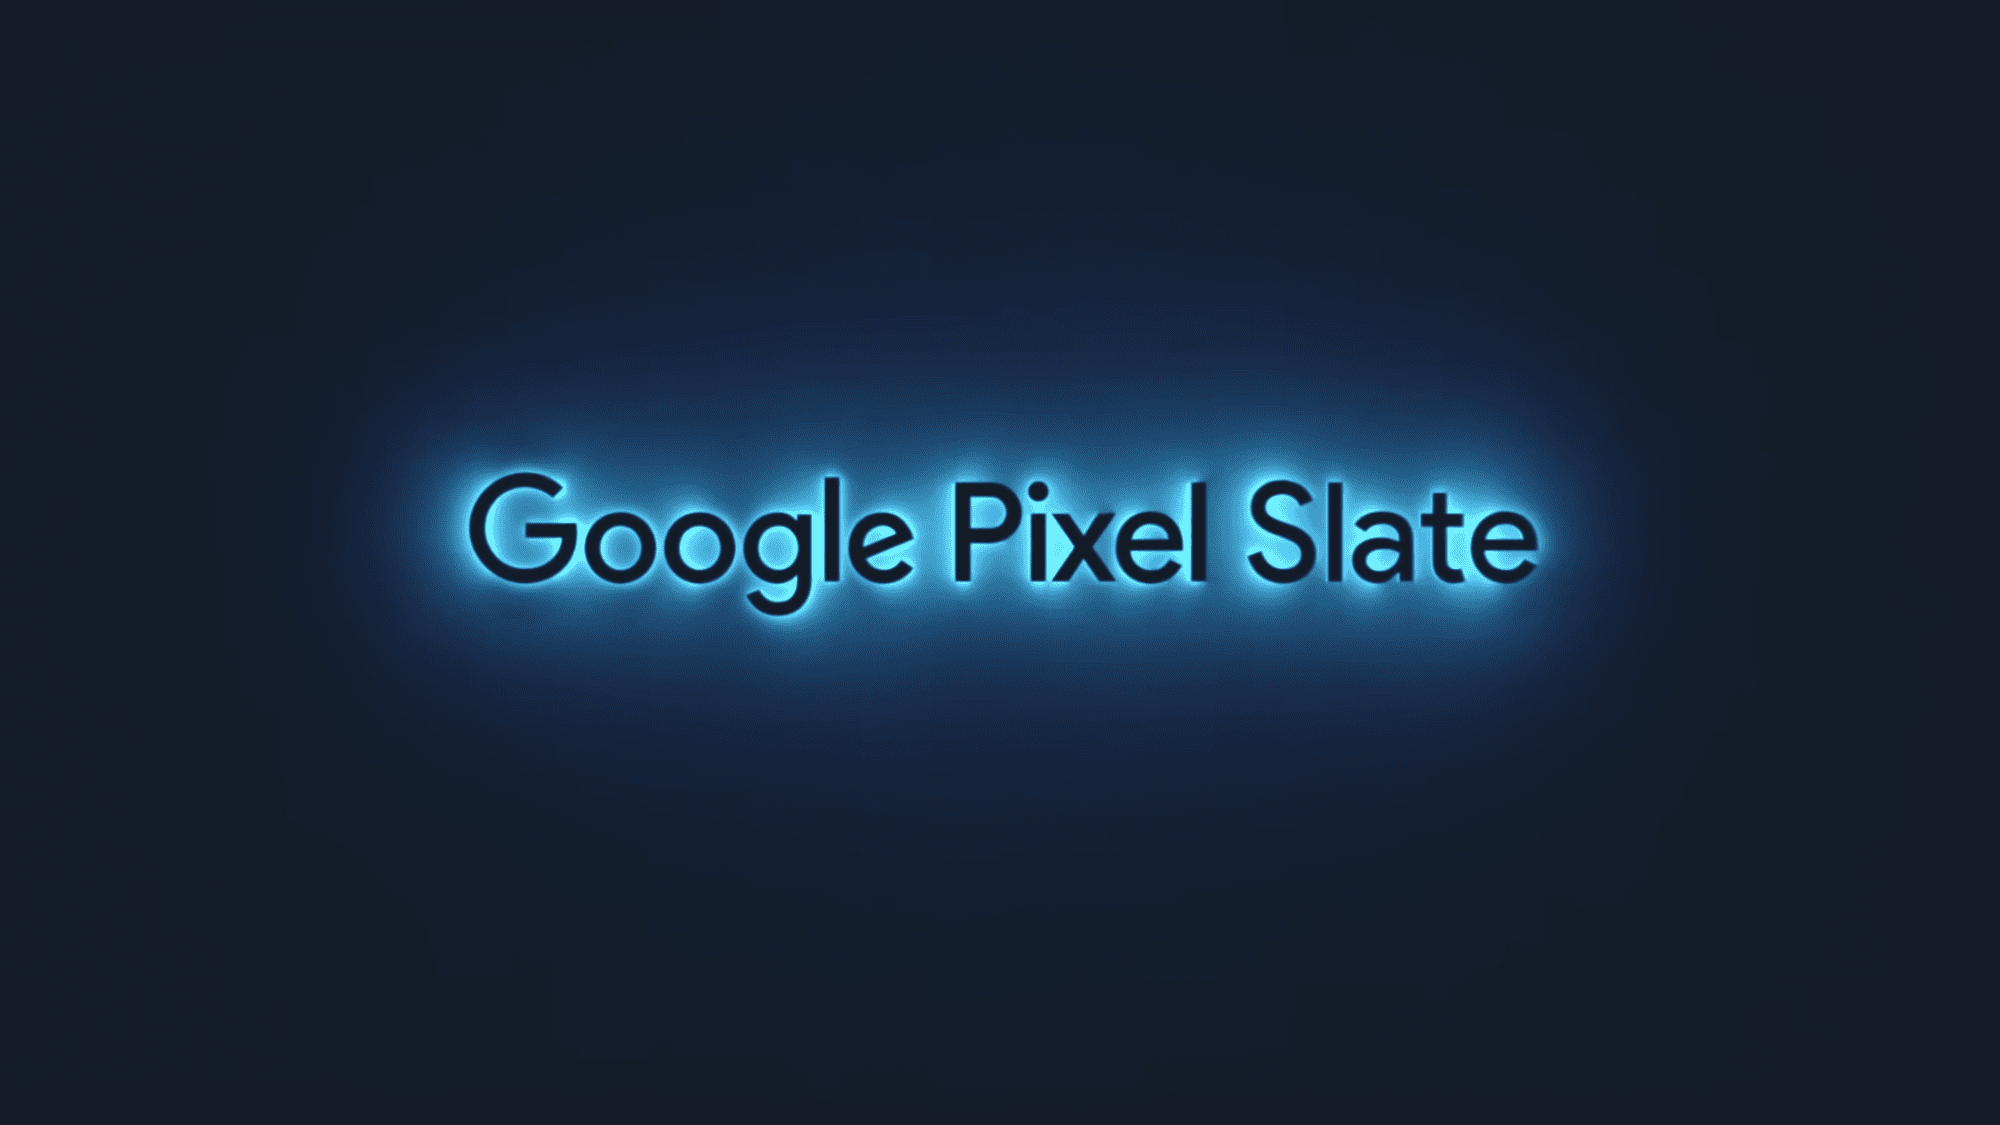 Google Pixel Slate Up For Pre-Order